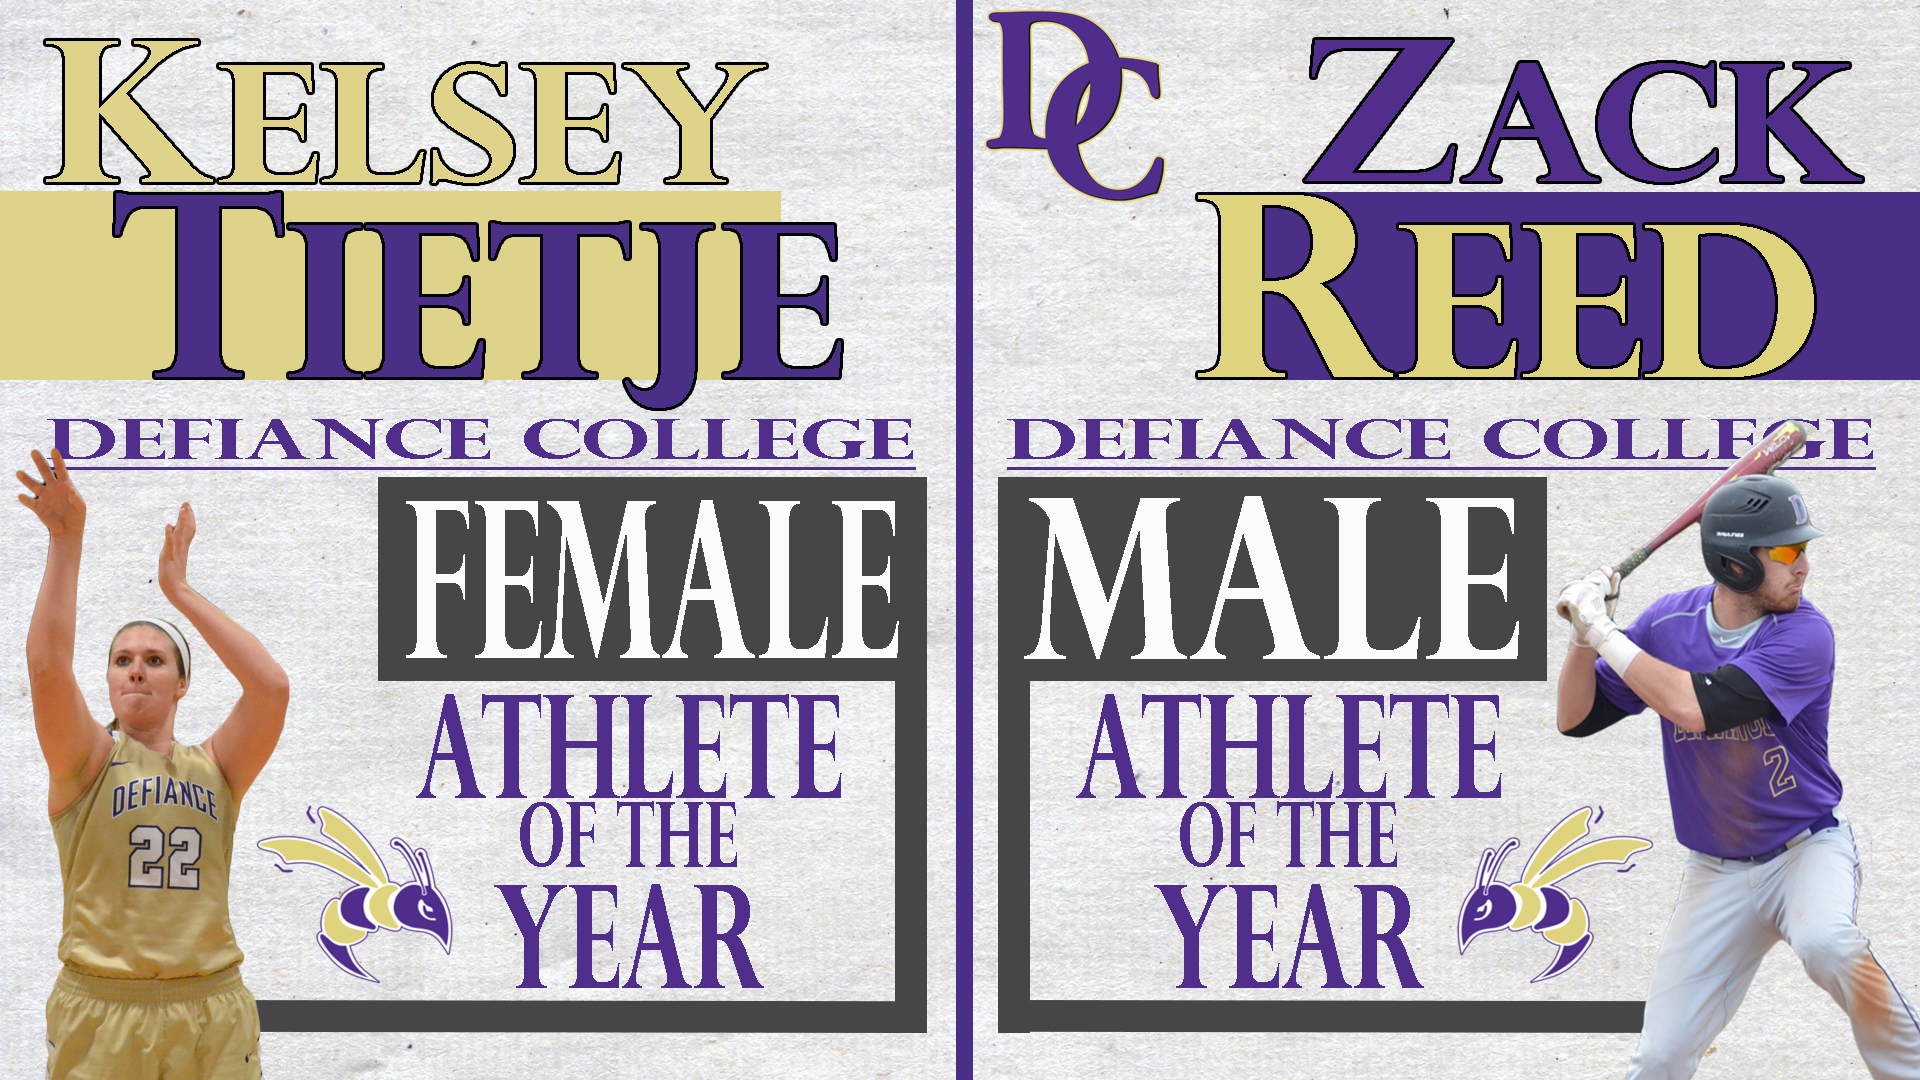 Defiance Announces Male and Female Athlete of the Year